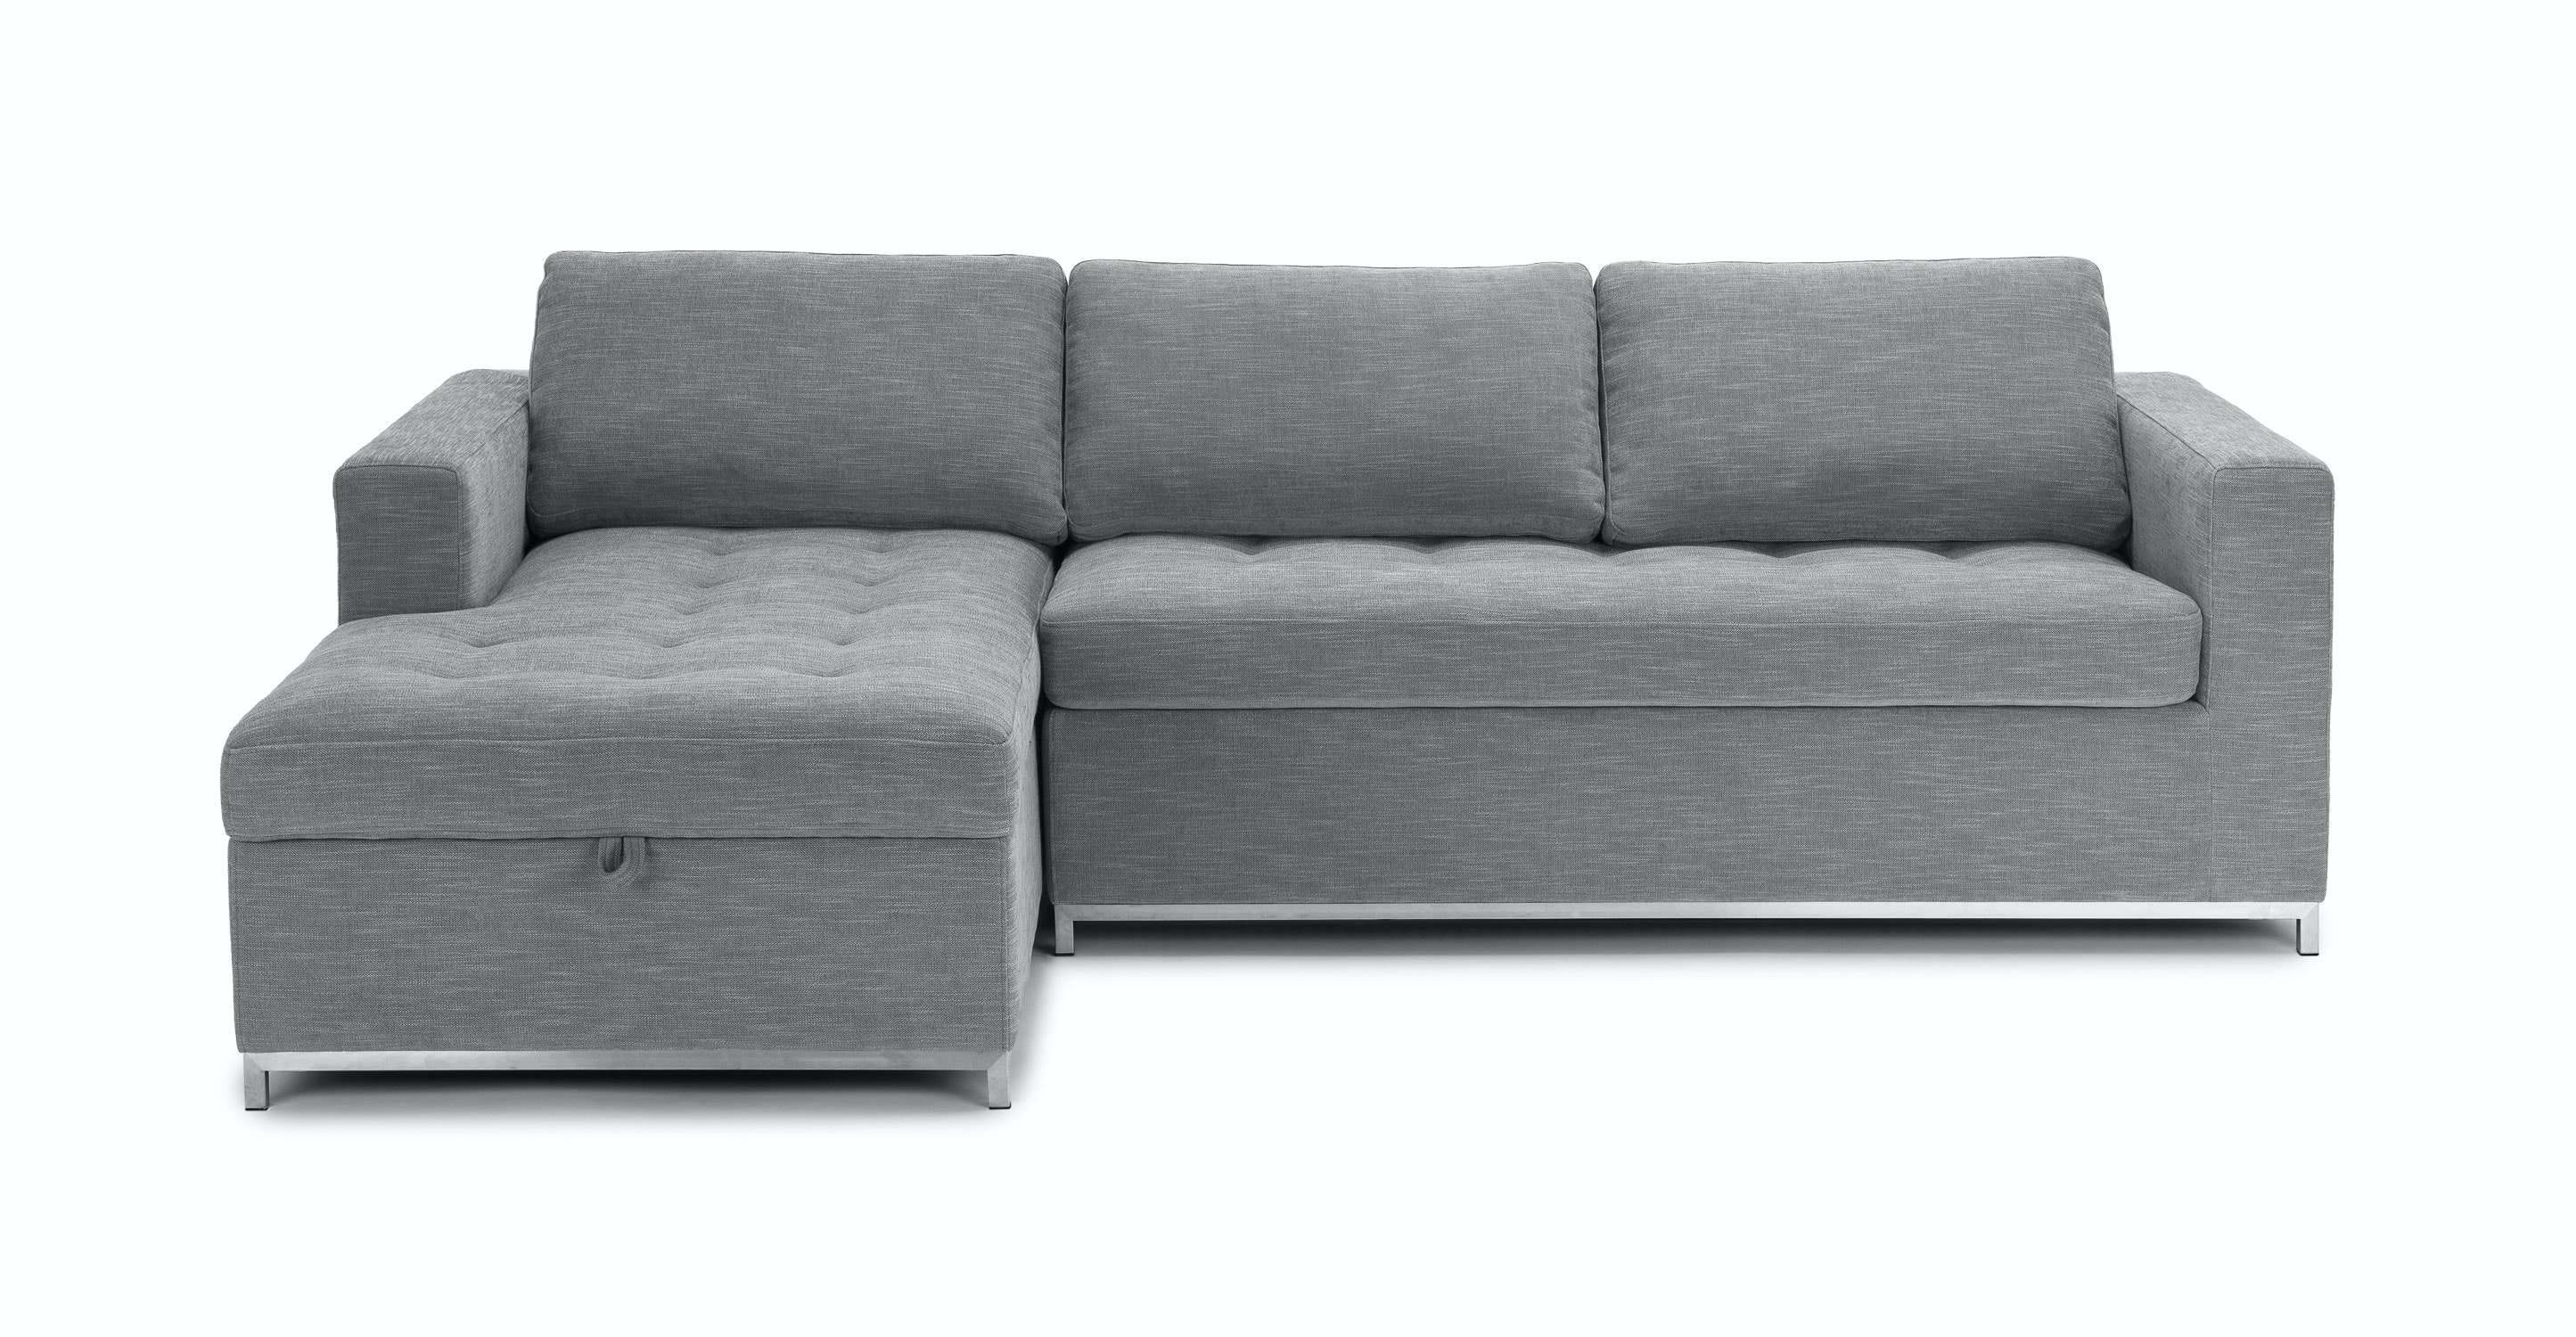 Soma Midnight Blue Left Sofa Bed Sectionals Article Modern Mid Century And Scandinavian Furniture